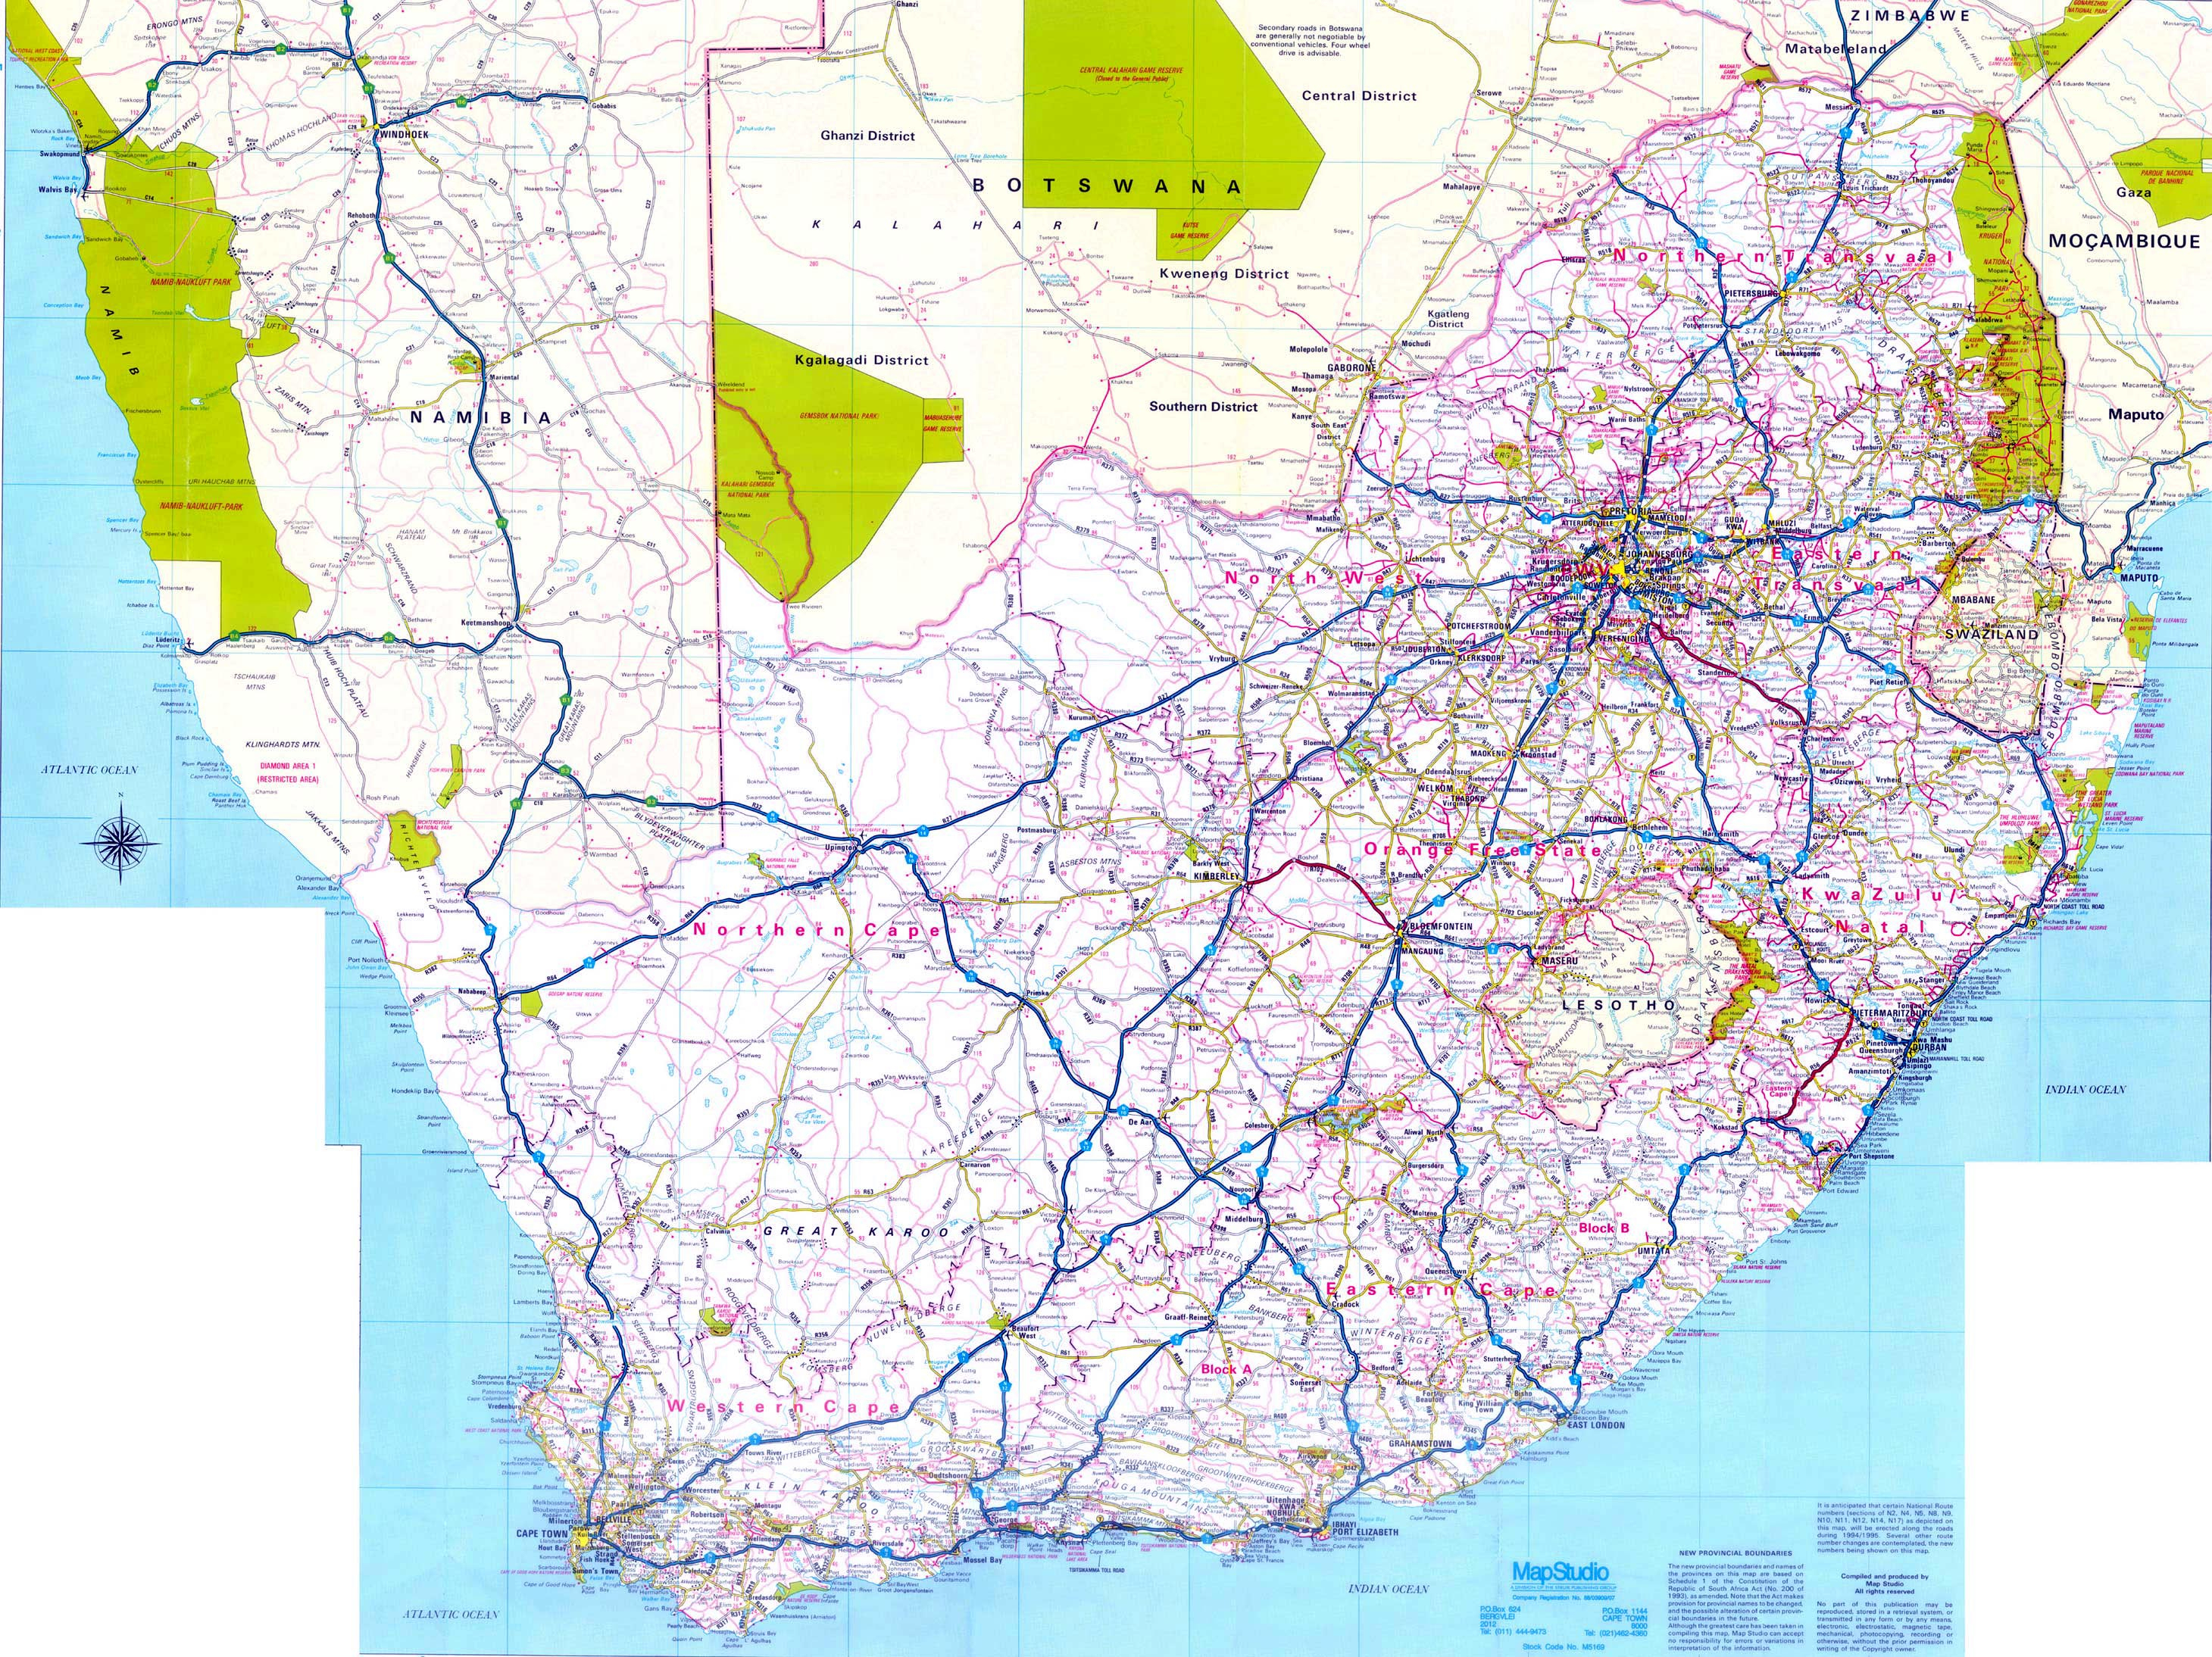 South Africa Maps | Printable Maps Of South Africa For Download - Free Printable Road Maps